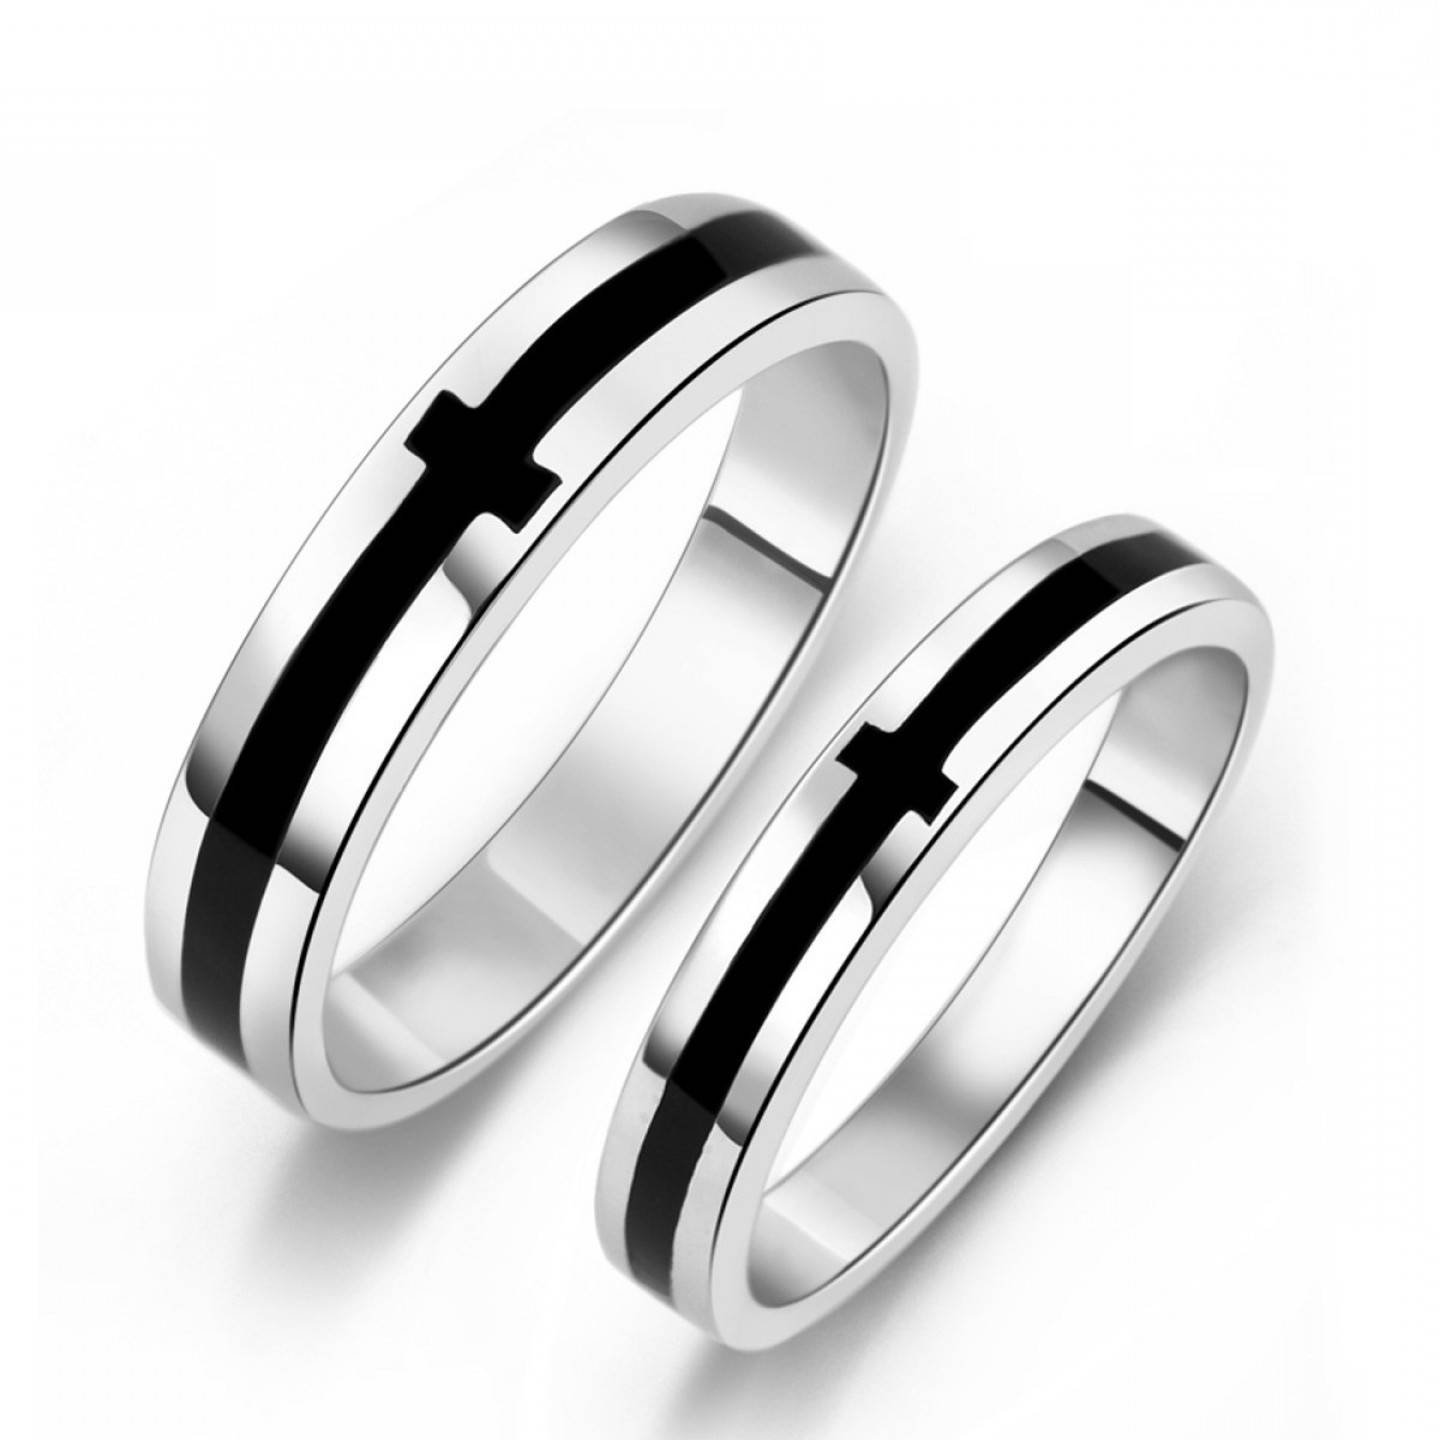 p black onyx s sterling silver mens ladies couple promise ring regarding black onyx wedding bands - Black Onyx Wedding Ring